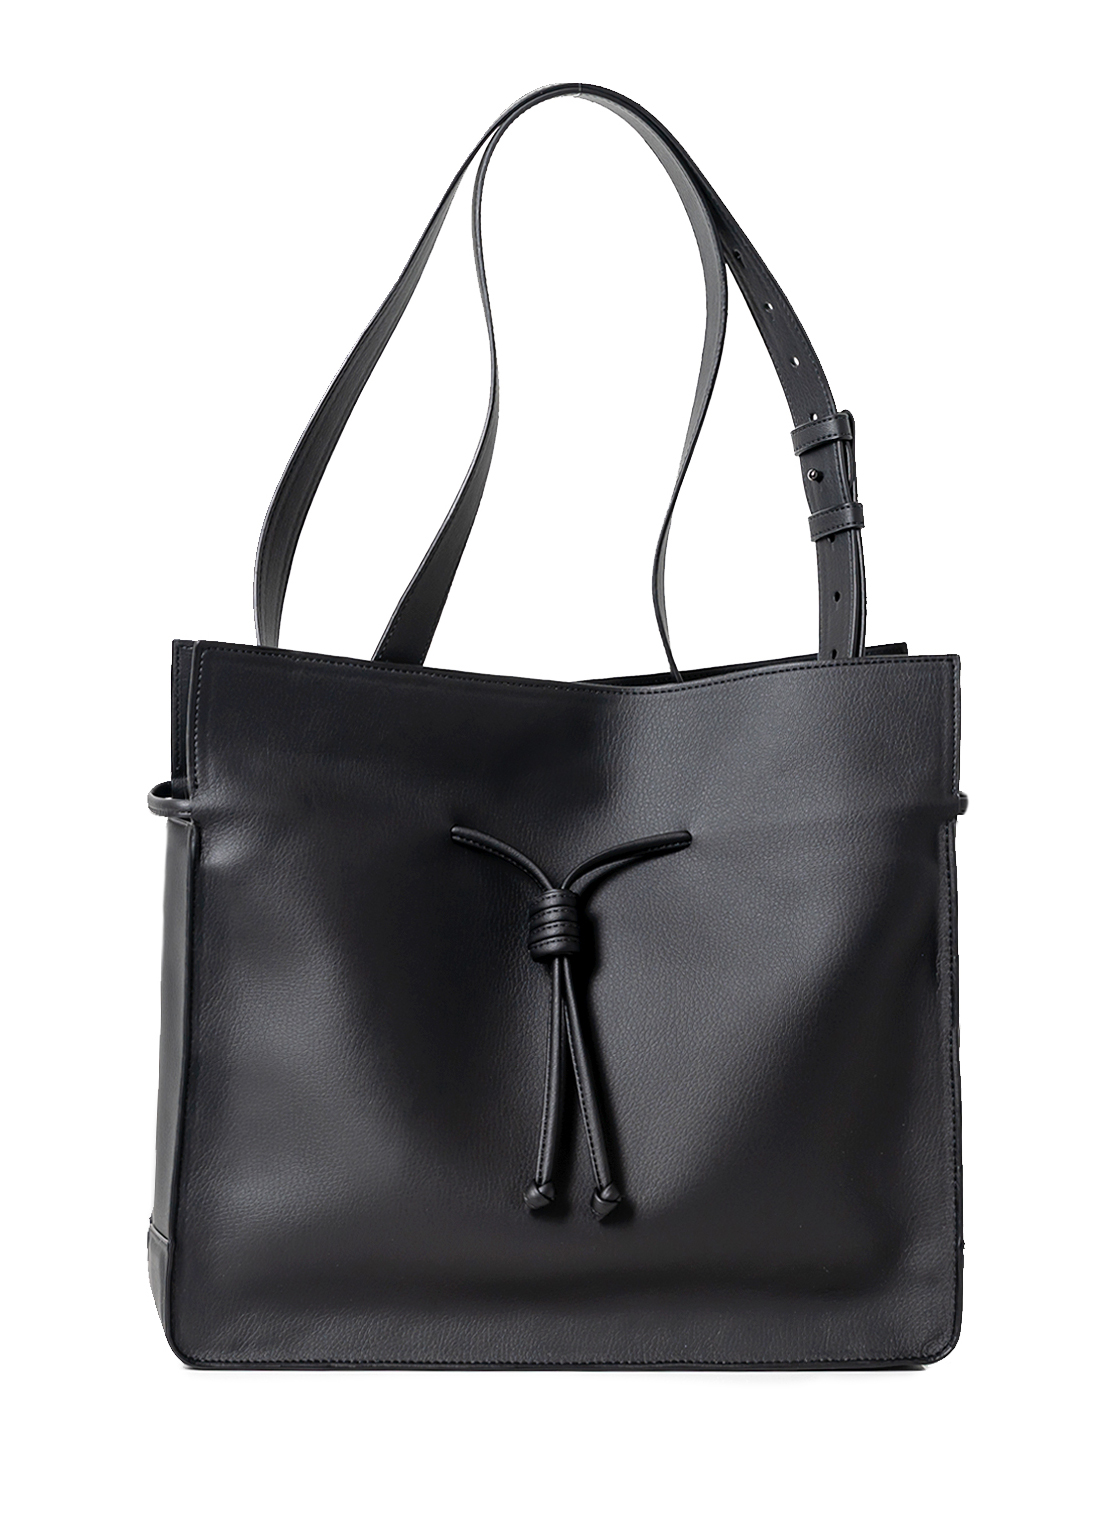 The Medium Shopper in Black